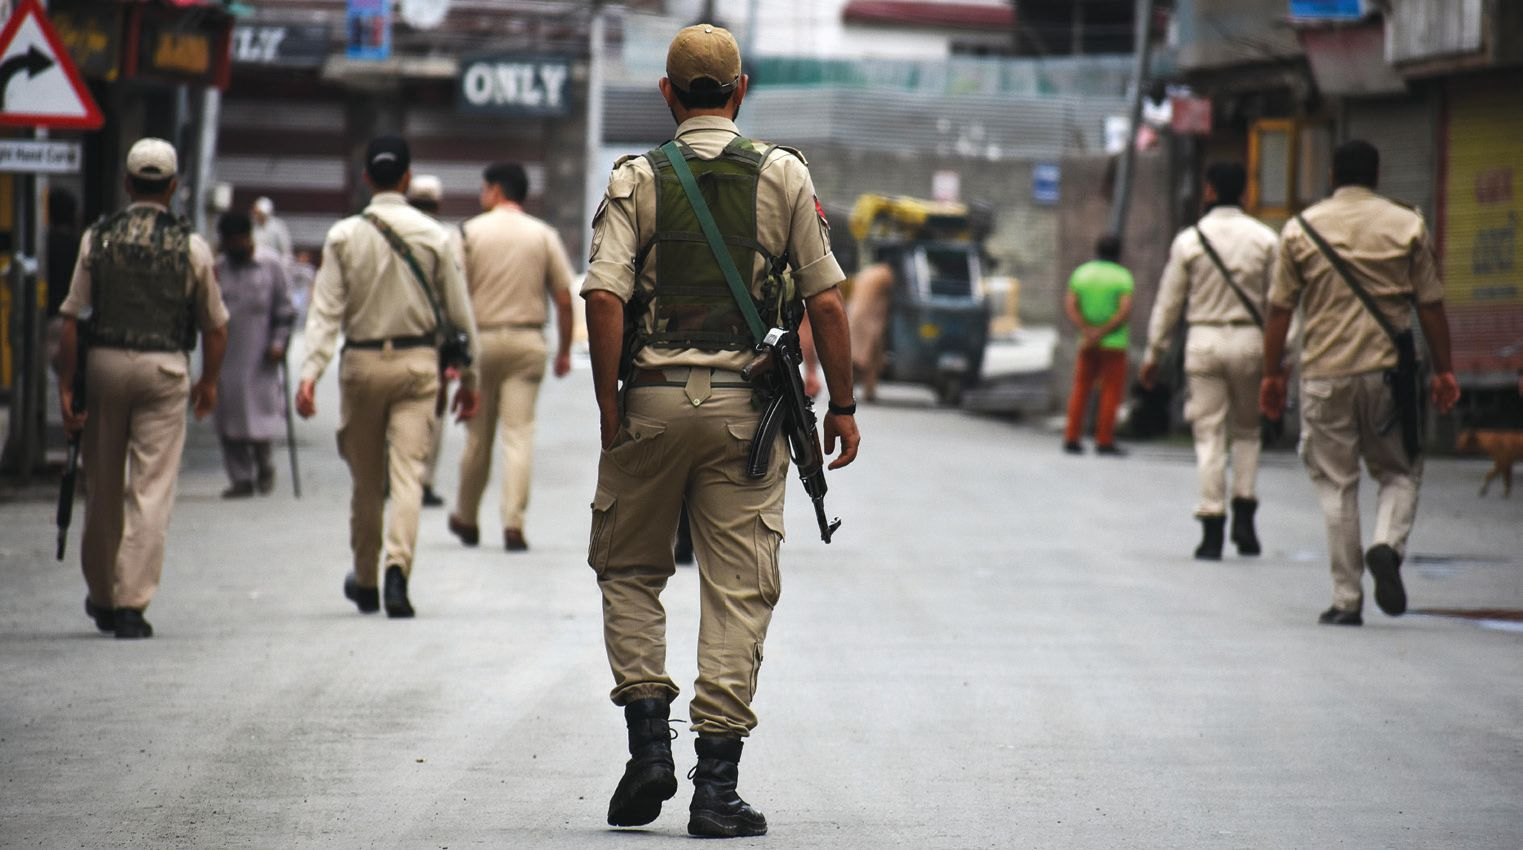 Partial shutdown in Kashmir to mark Martyrs' Day